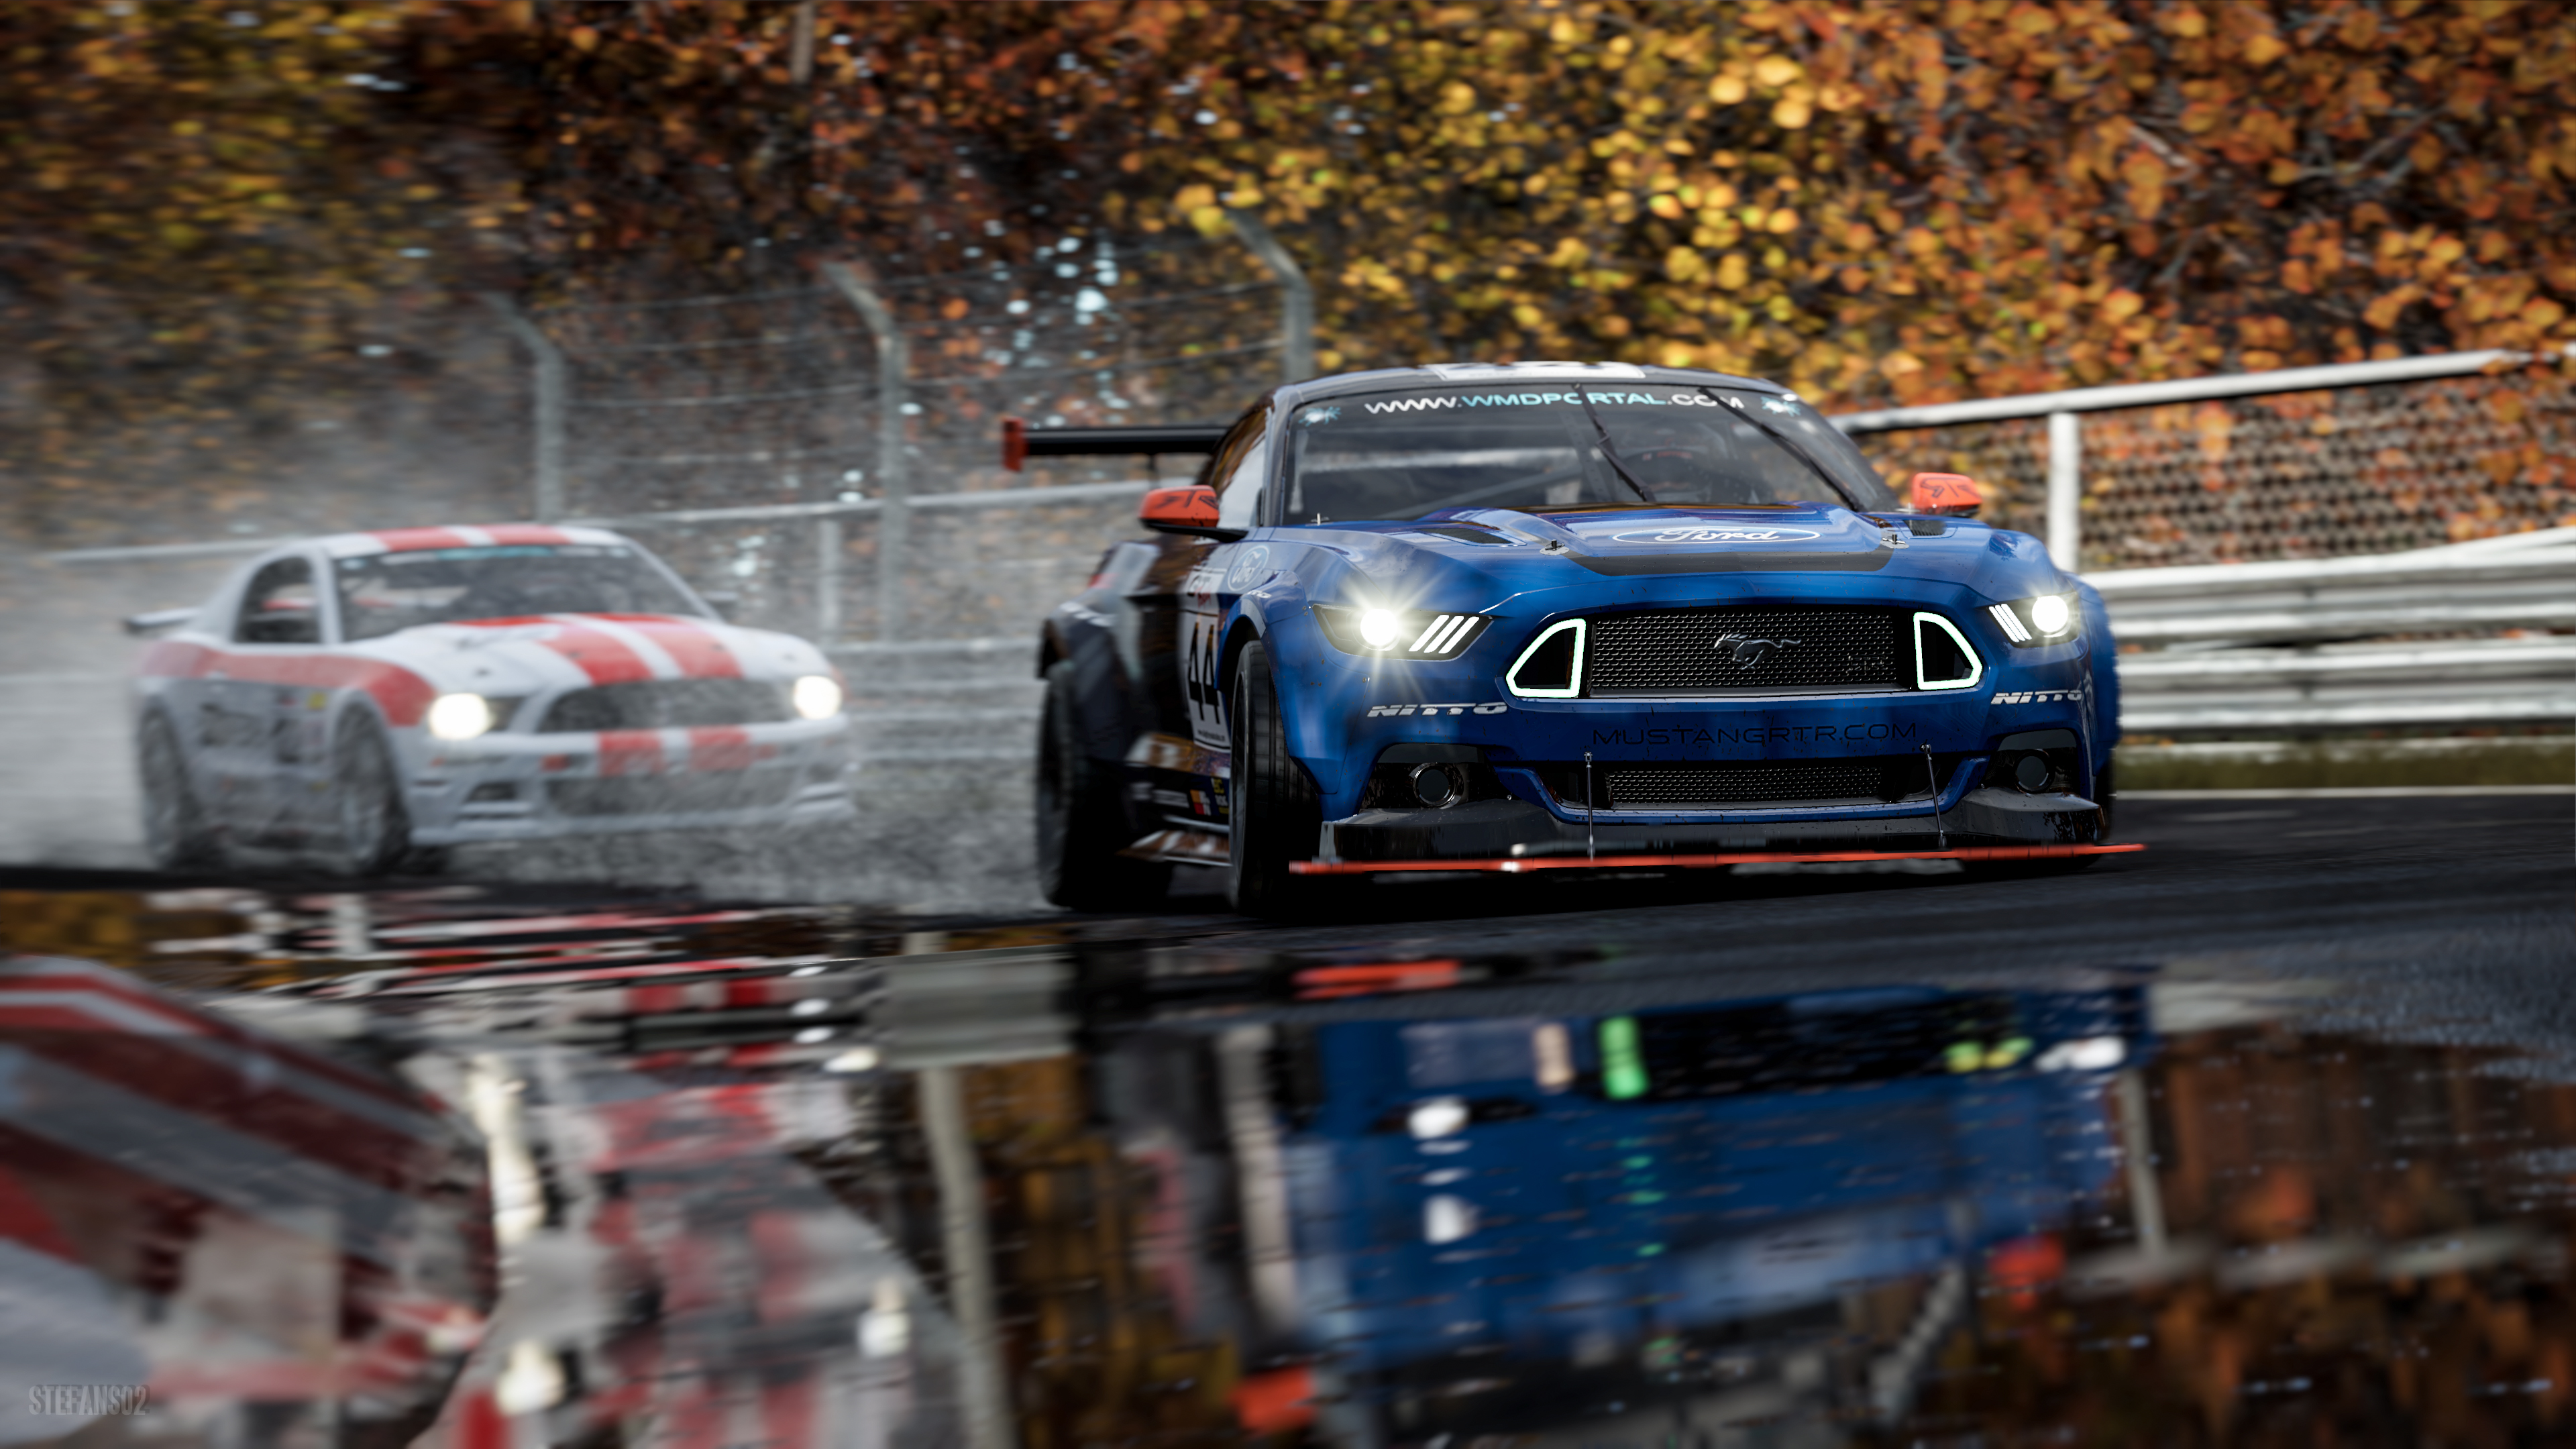 1920x1080 ford mustang rtr project cars 2 4k laptop full - Project cars 4k wallpaper ...